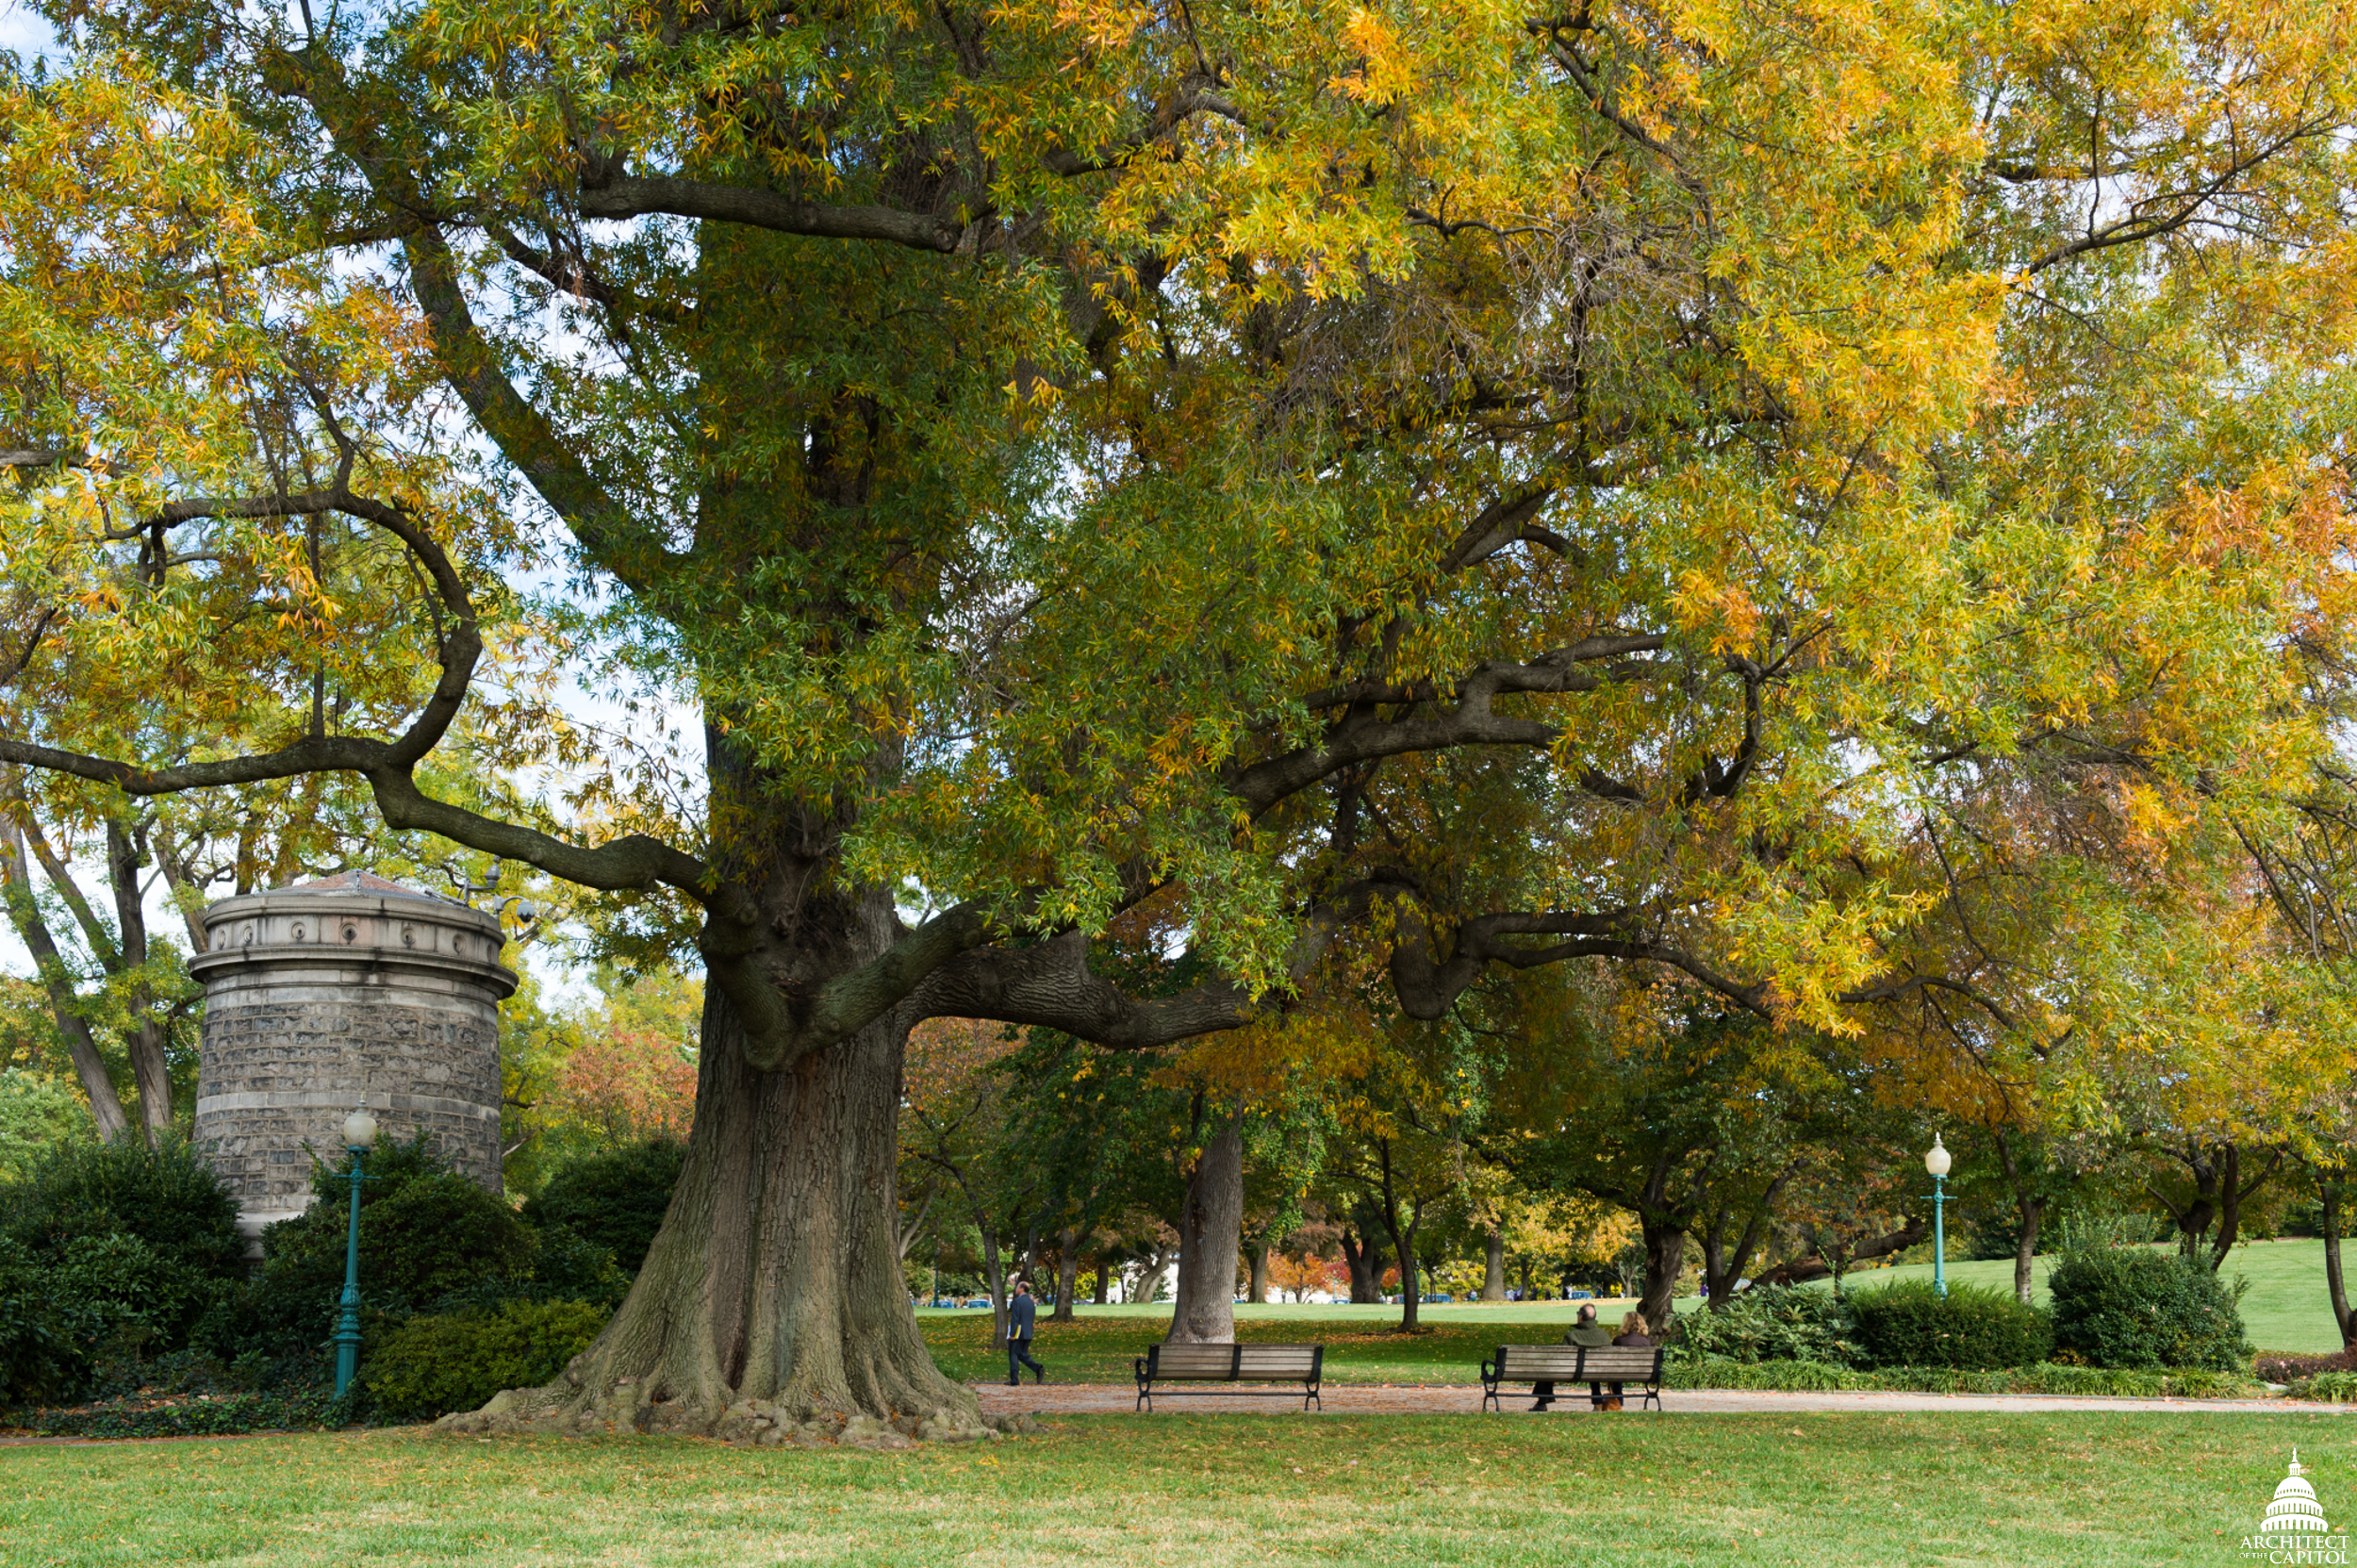 Willow Oak (Quercus phellos)